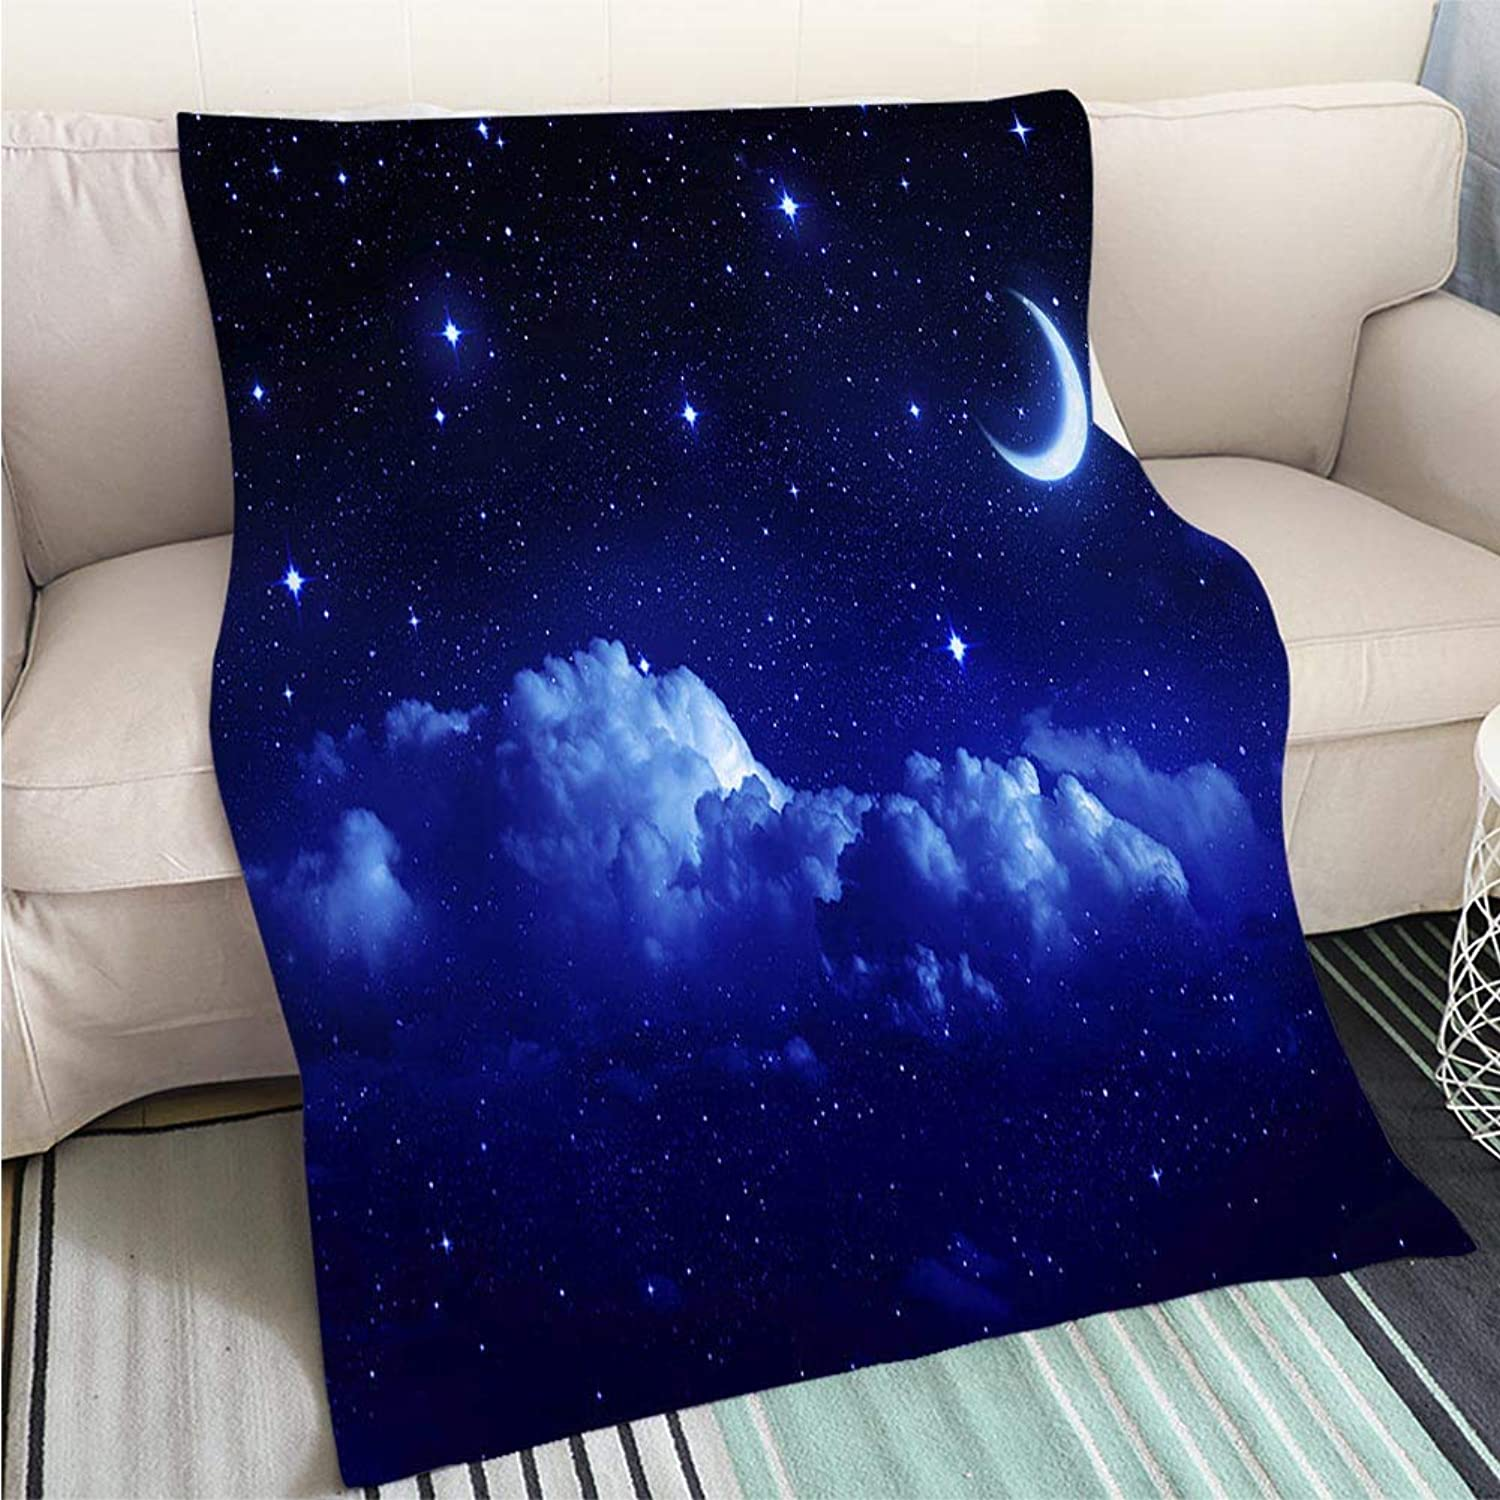 Luxury Super Soft Blanket Romantic Sky Night for Valentine Background Perfect for Couch Sofa or Bed Cool Quilt